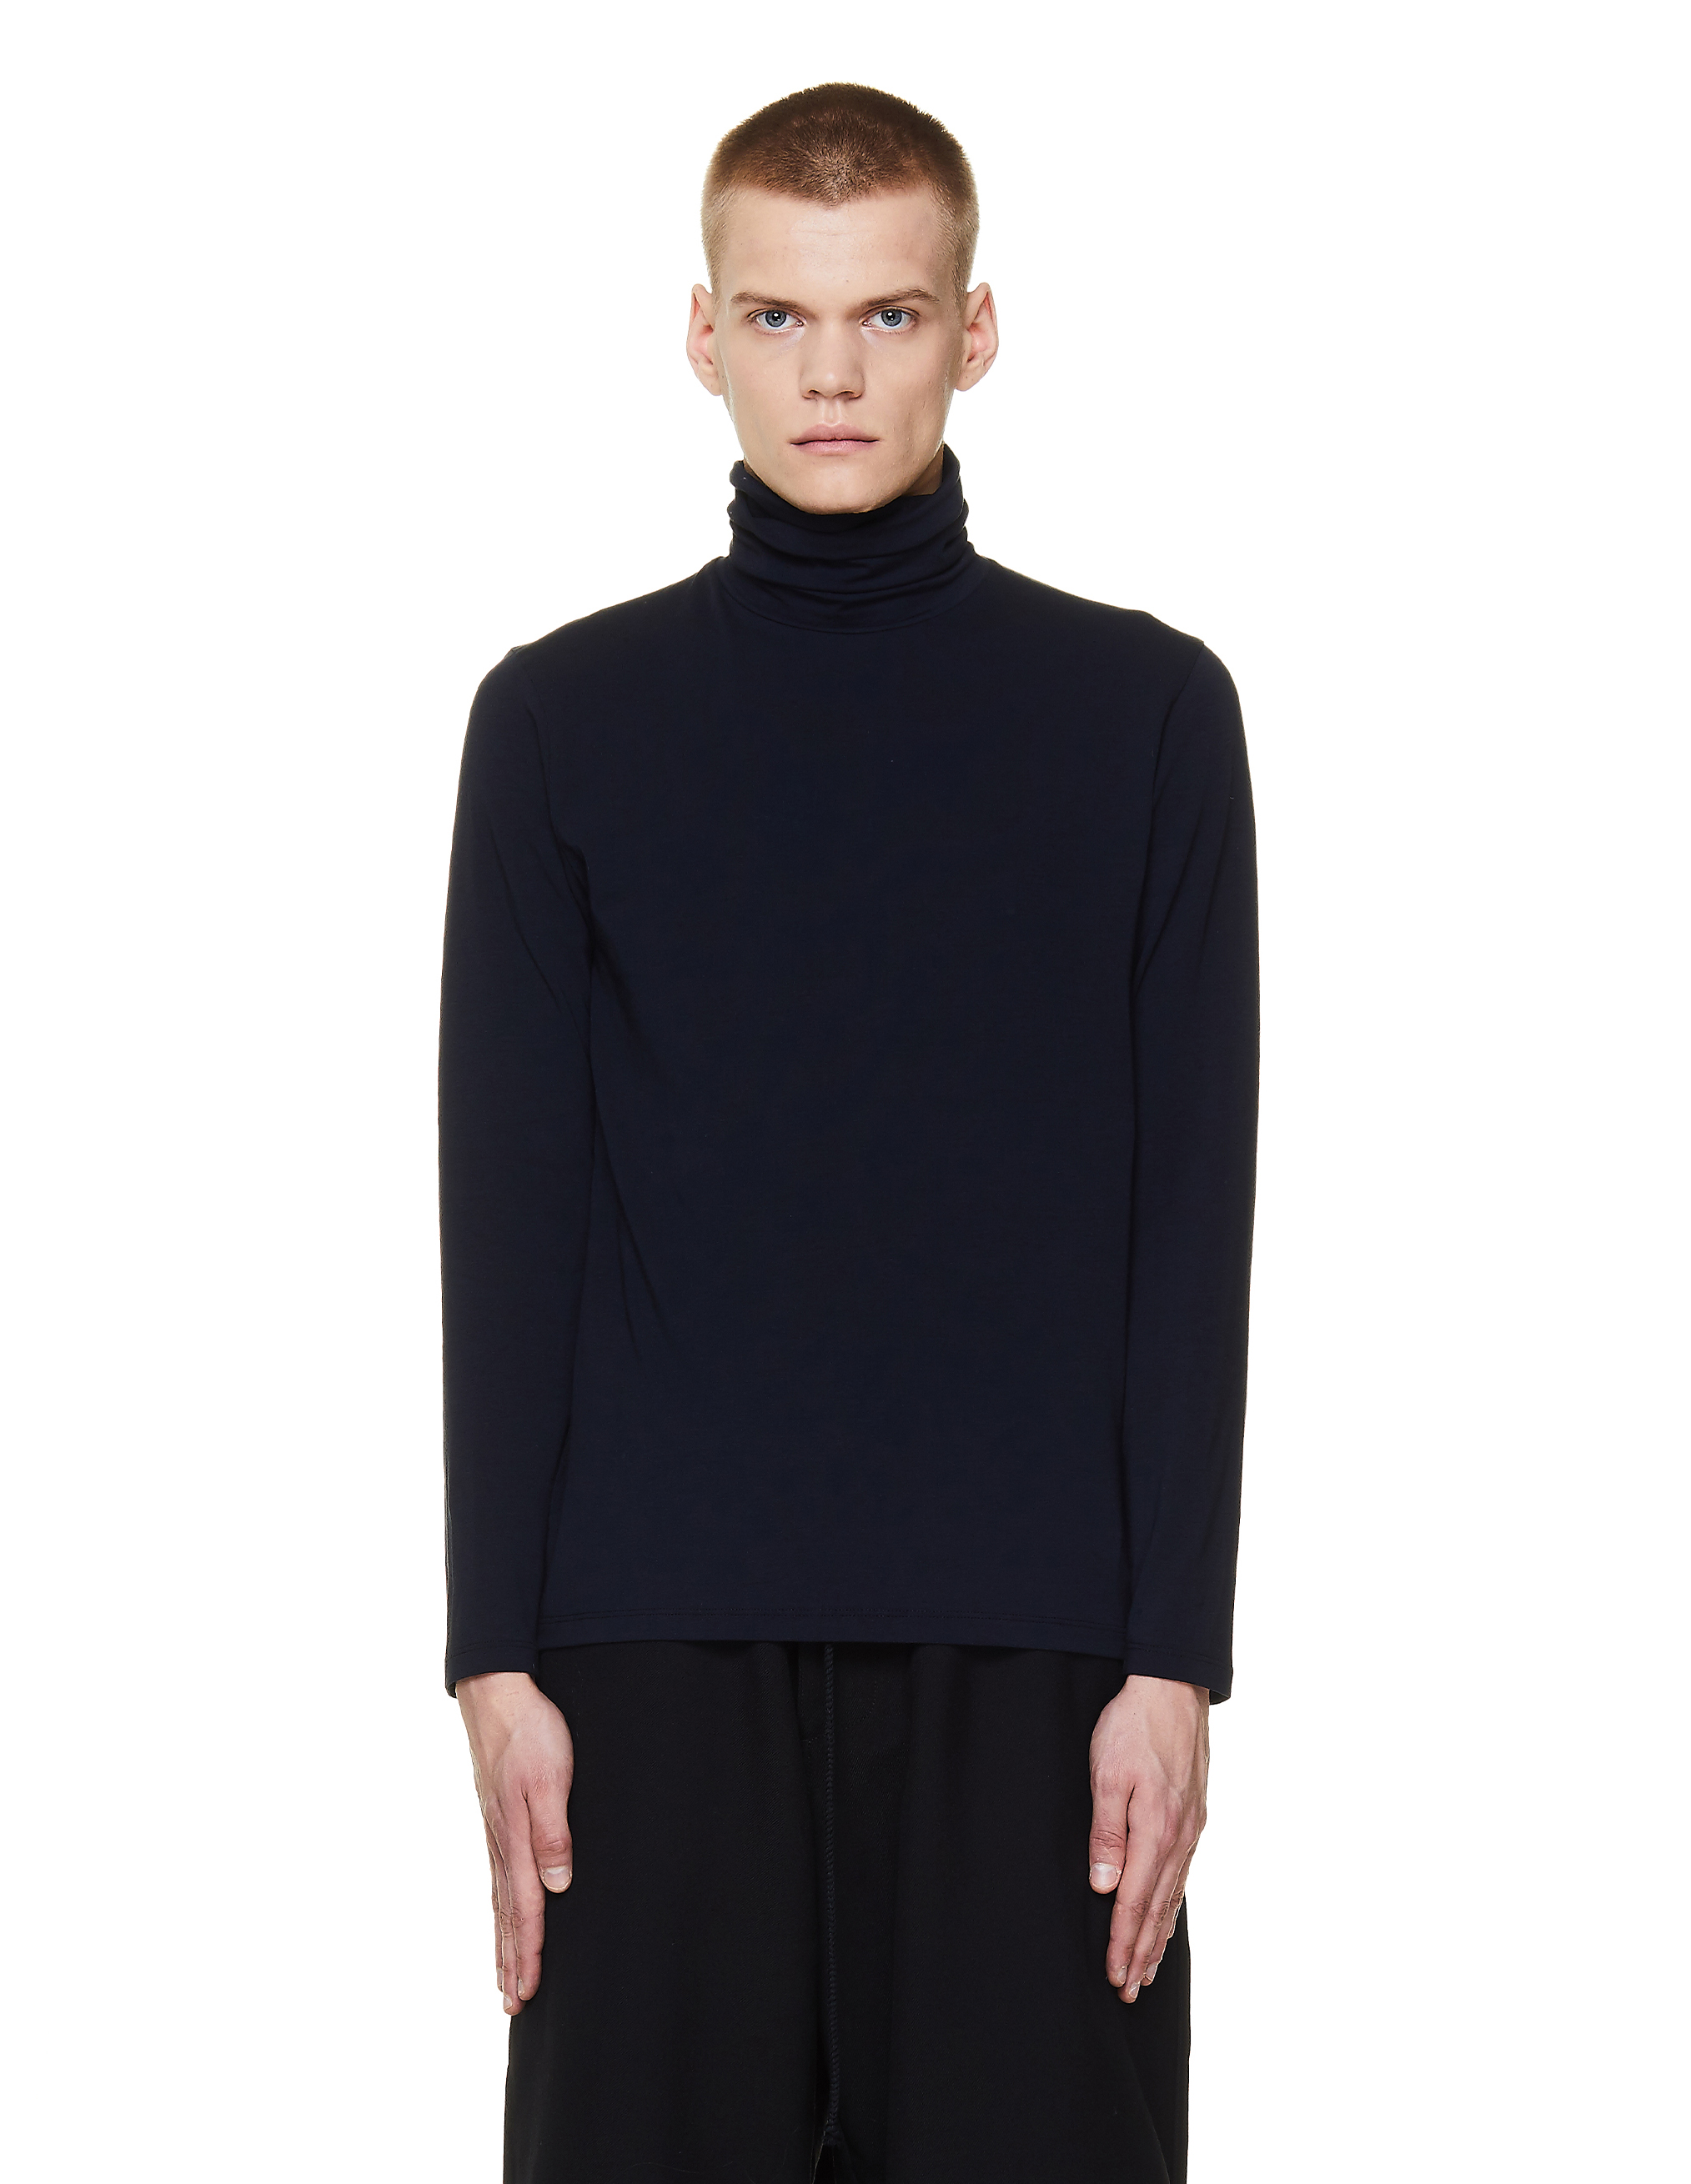 Jil Sander Navy Blue Cotton Turtleneck